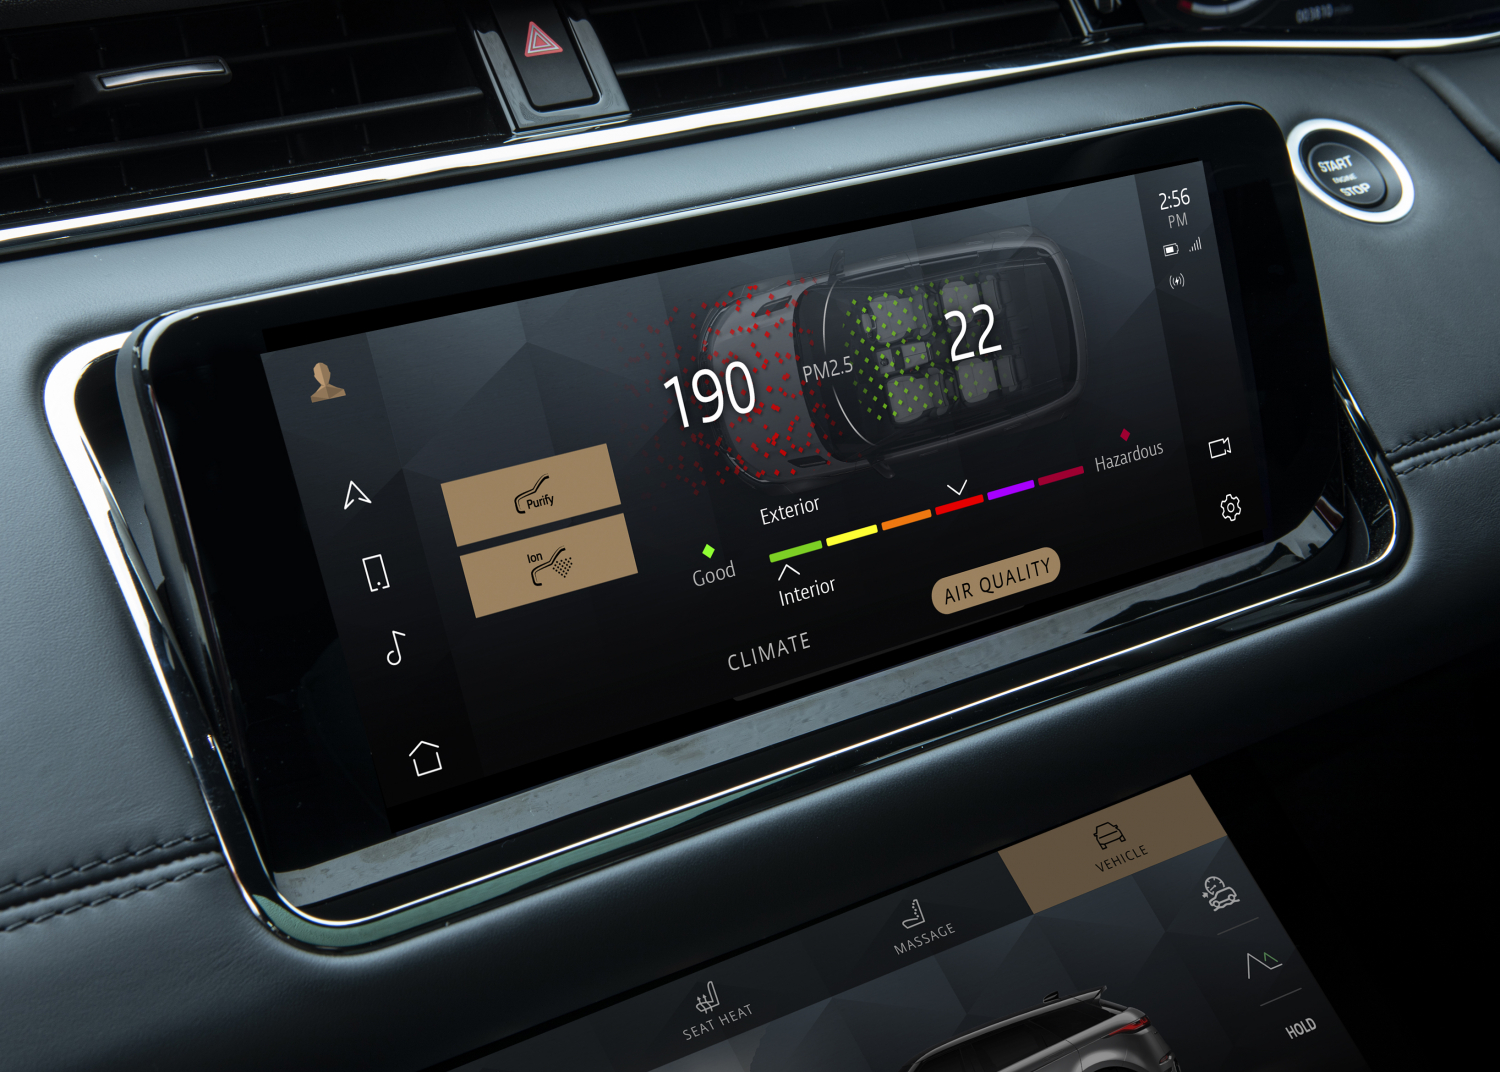 RANGE ROVER EVOQUE - THE MOST CONNECTED COMPACT SUV